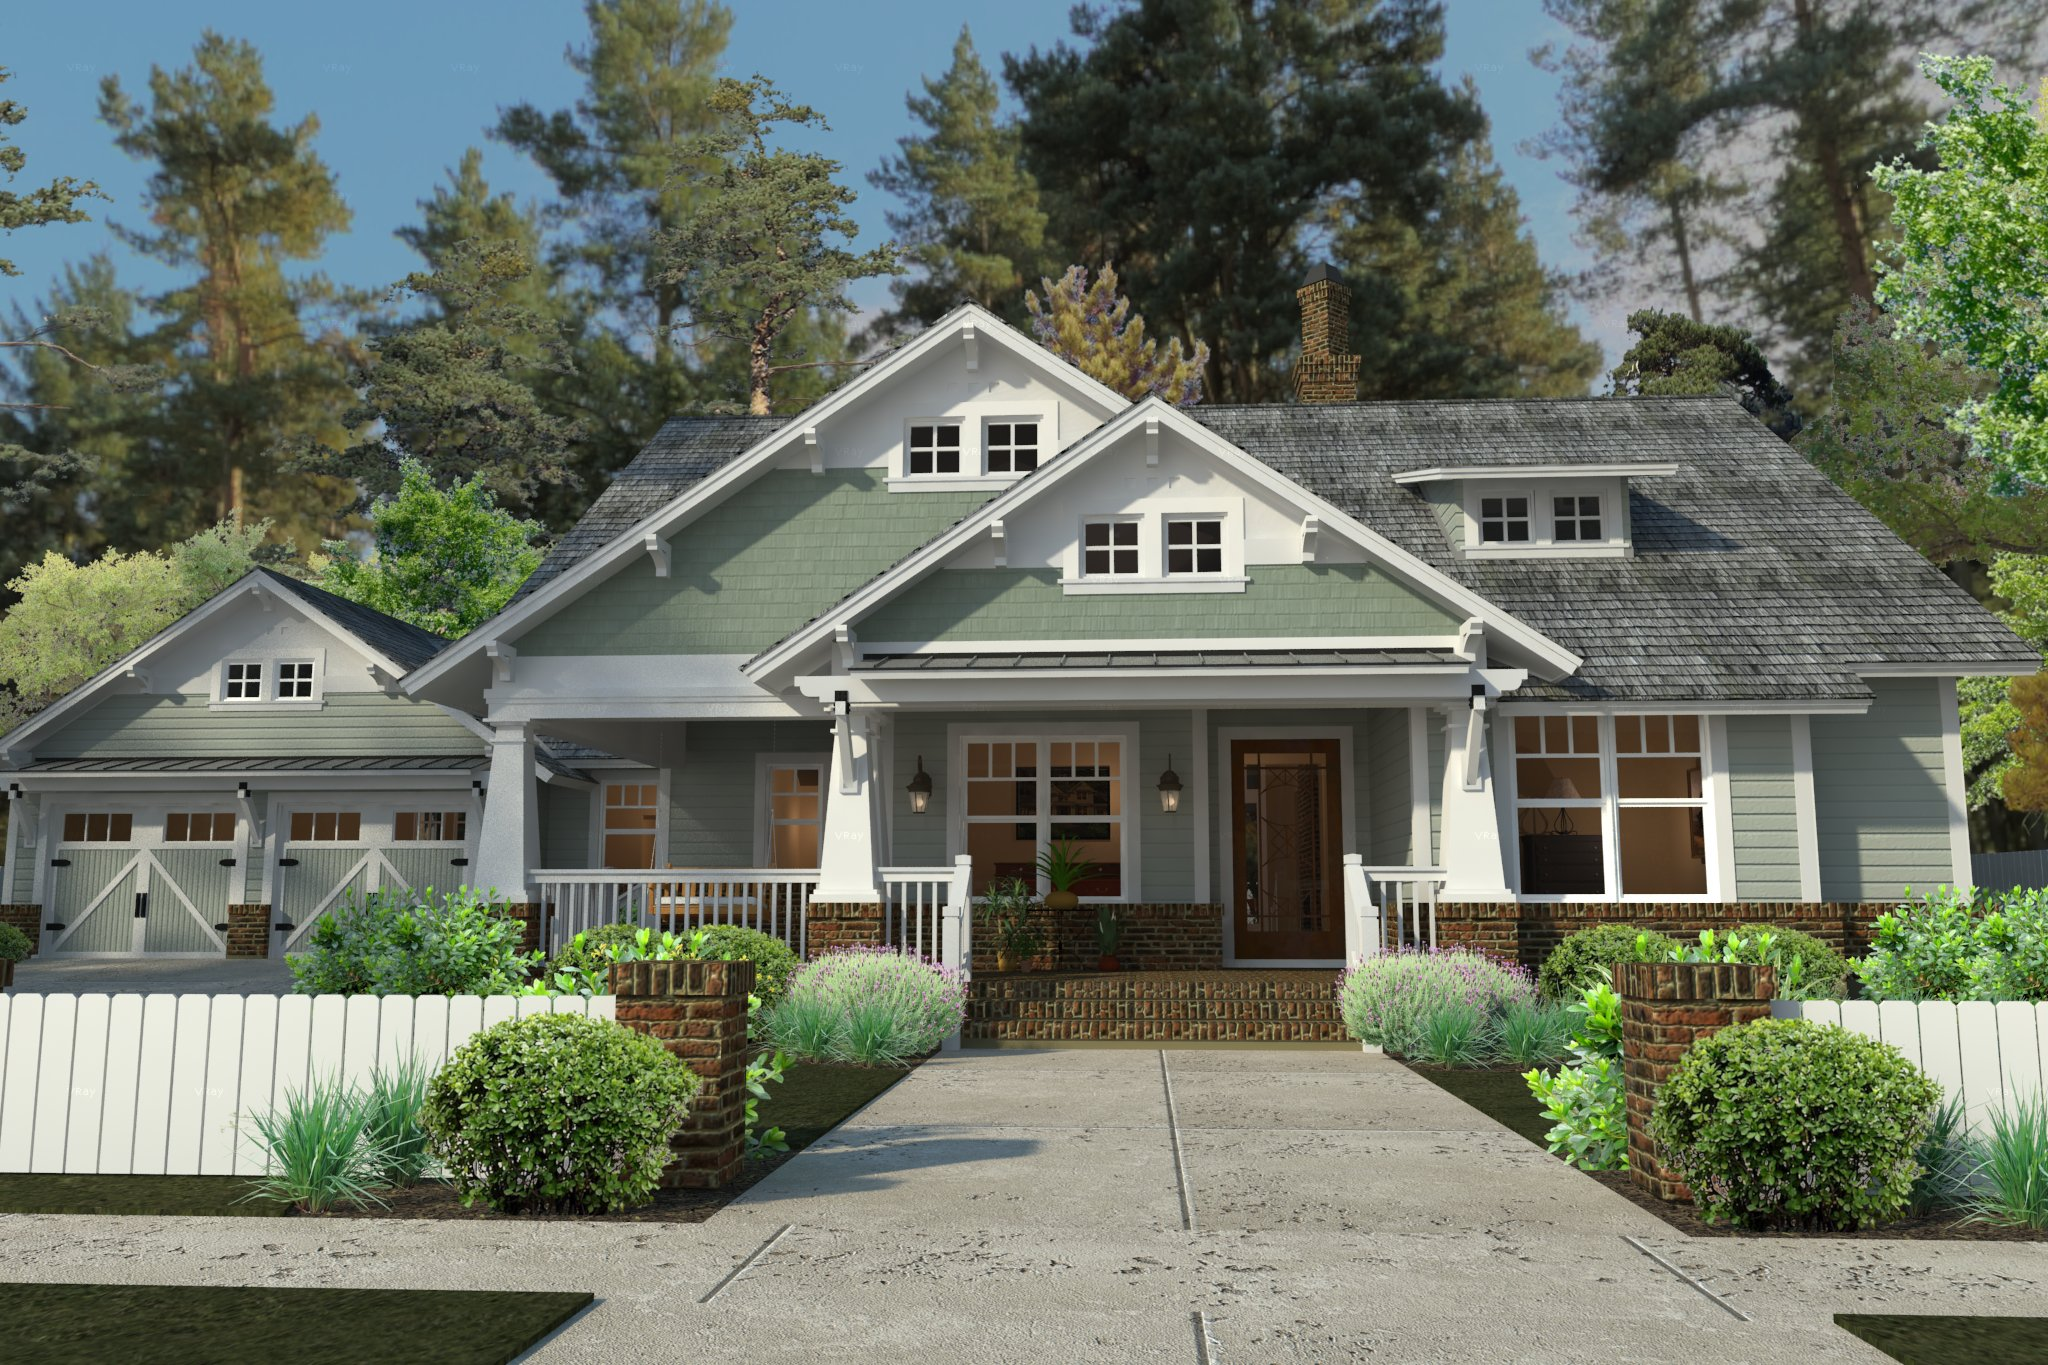 5 tips for achieving great curb appeal the house designers for Most popular one story house plans